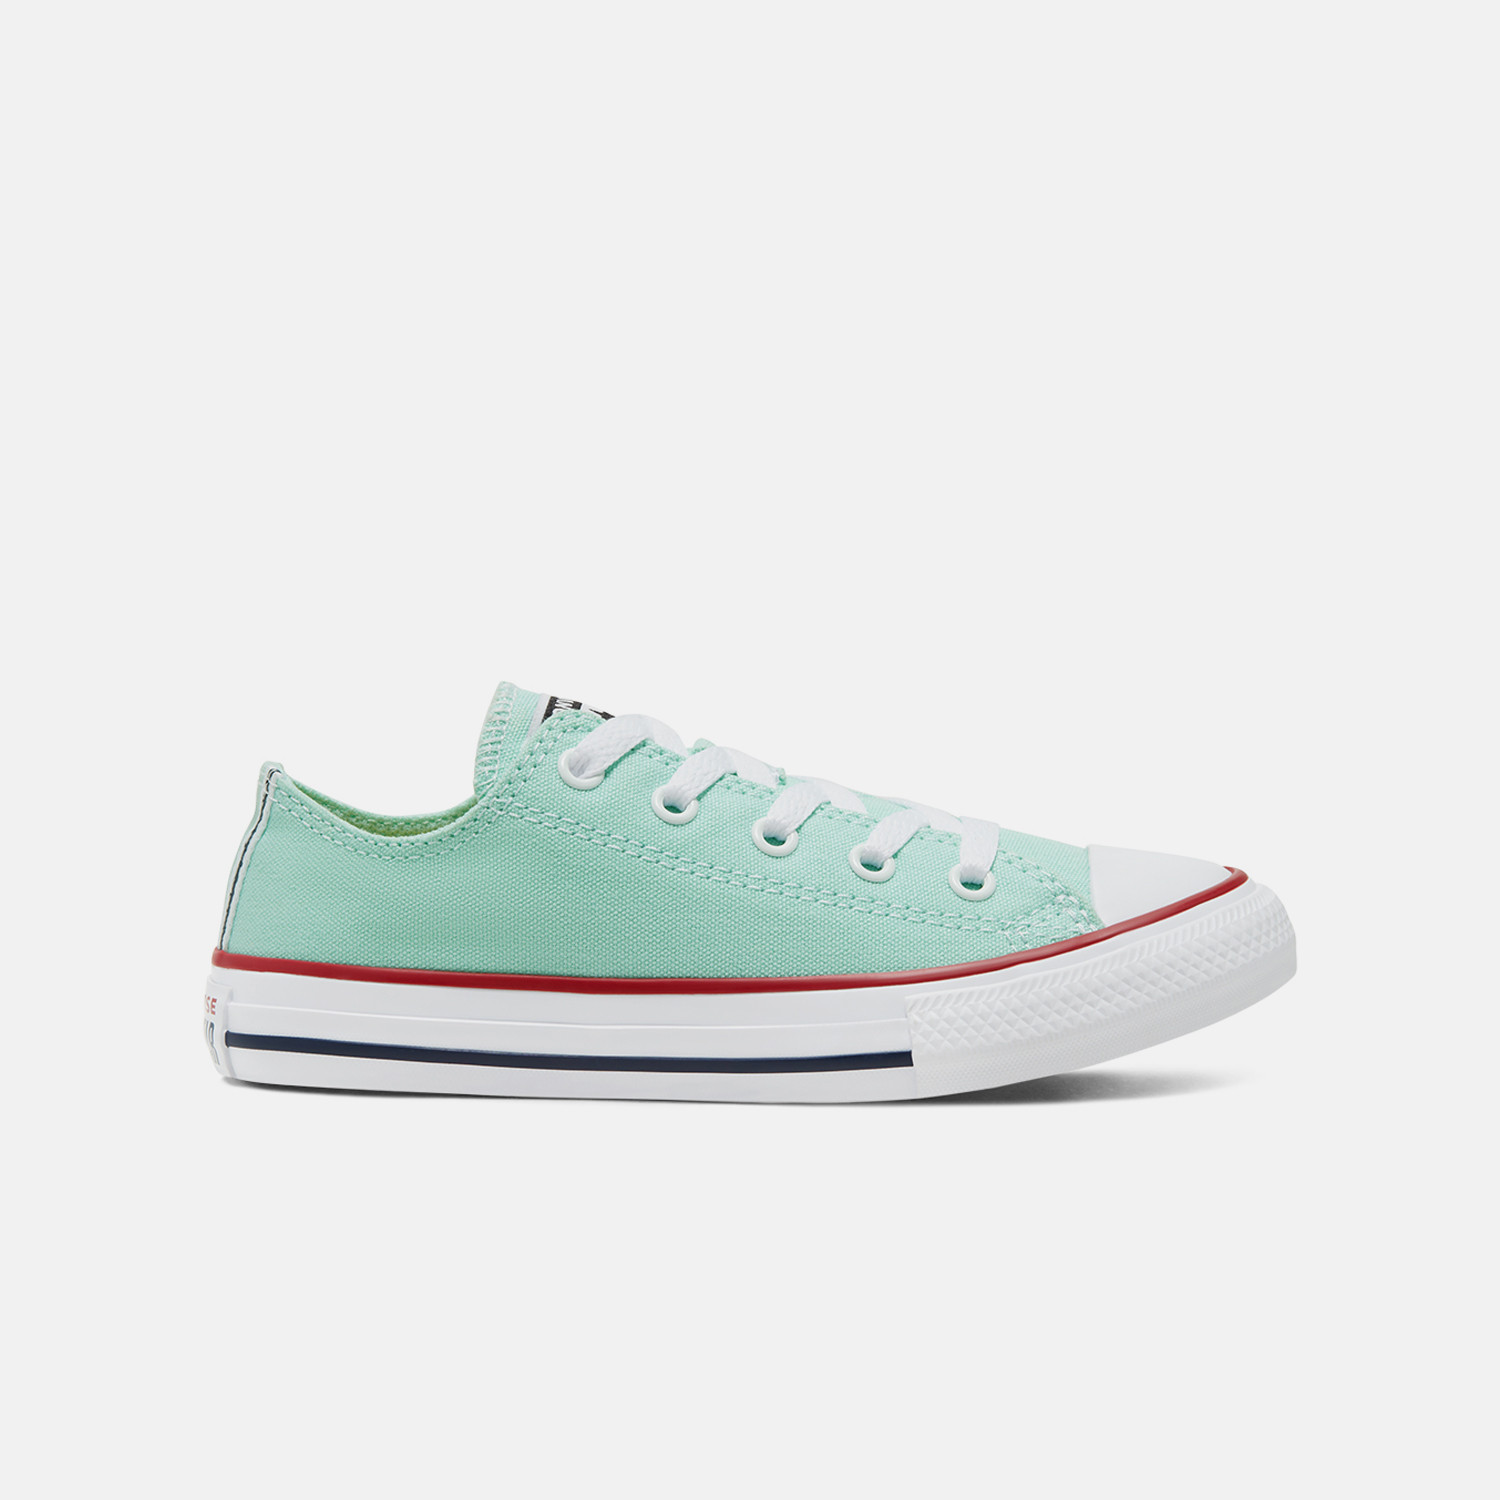 Converse Chuck Taylor All Star Low Top Unisex Youth Shoes (9000049662_44783)